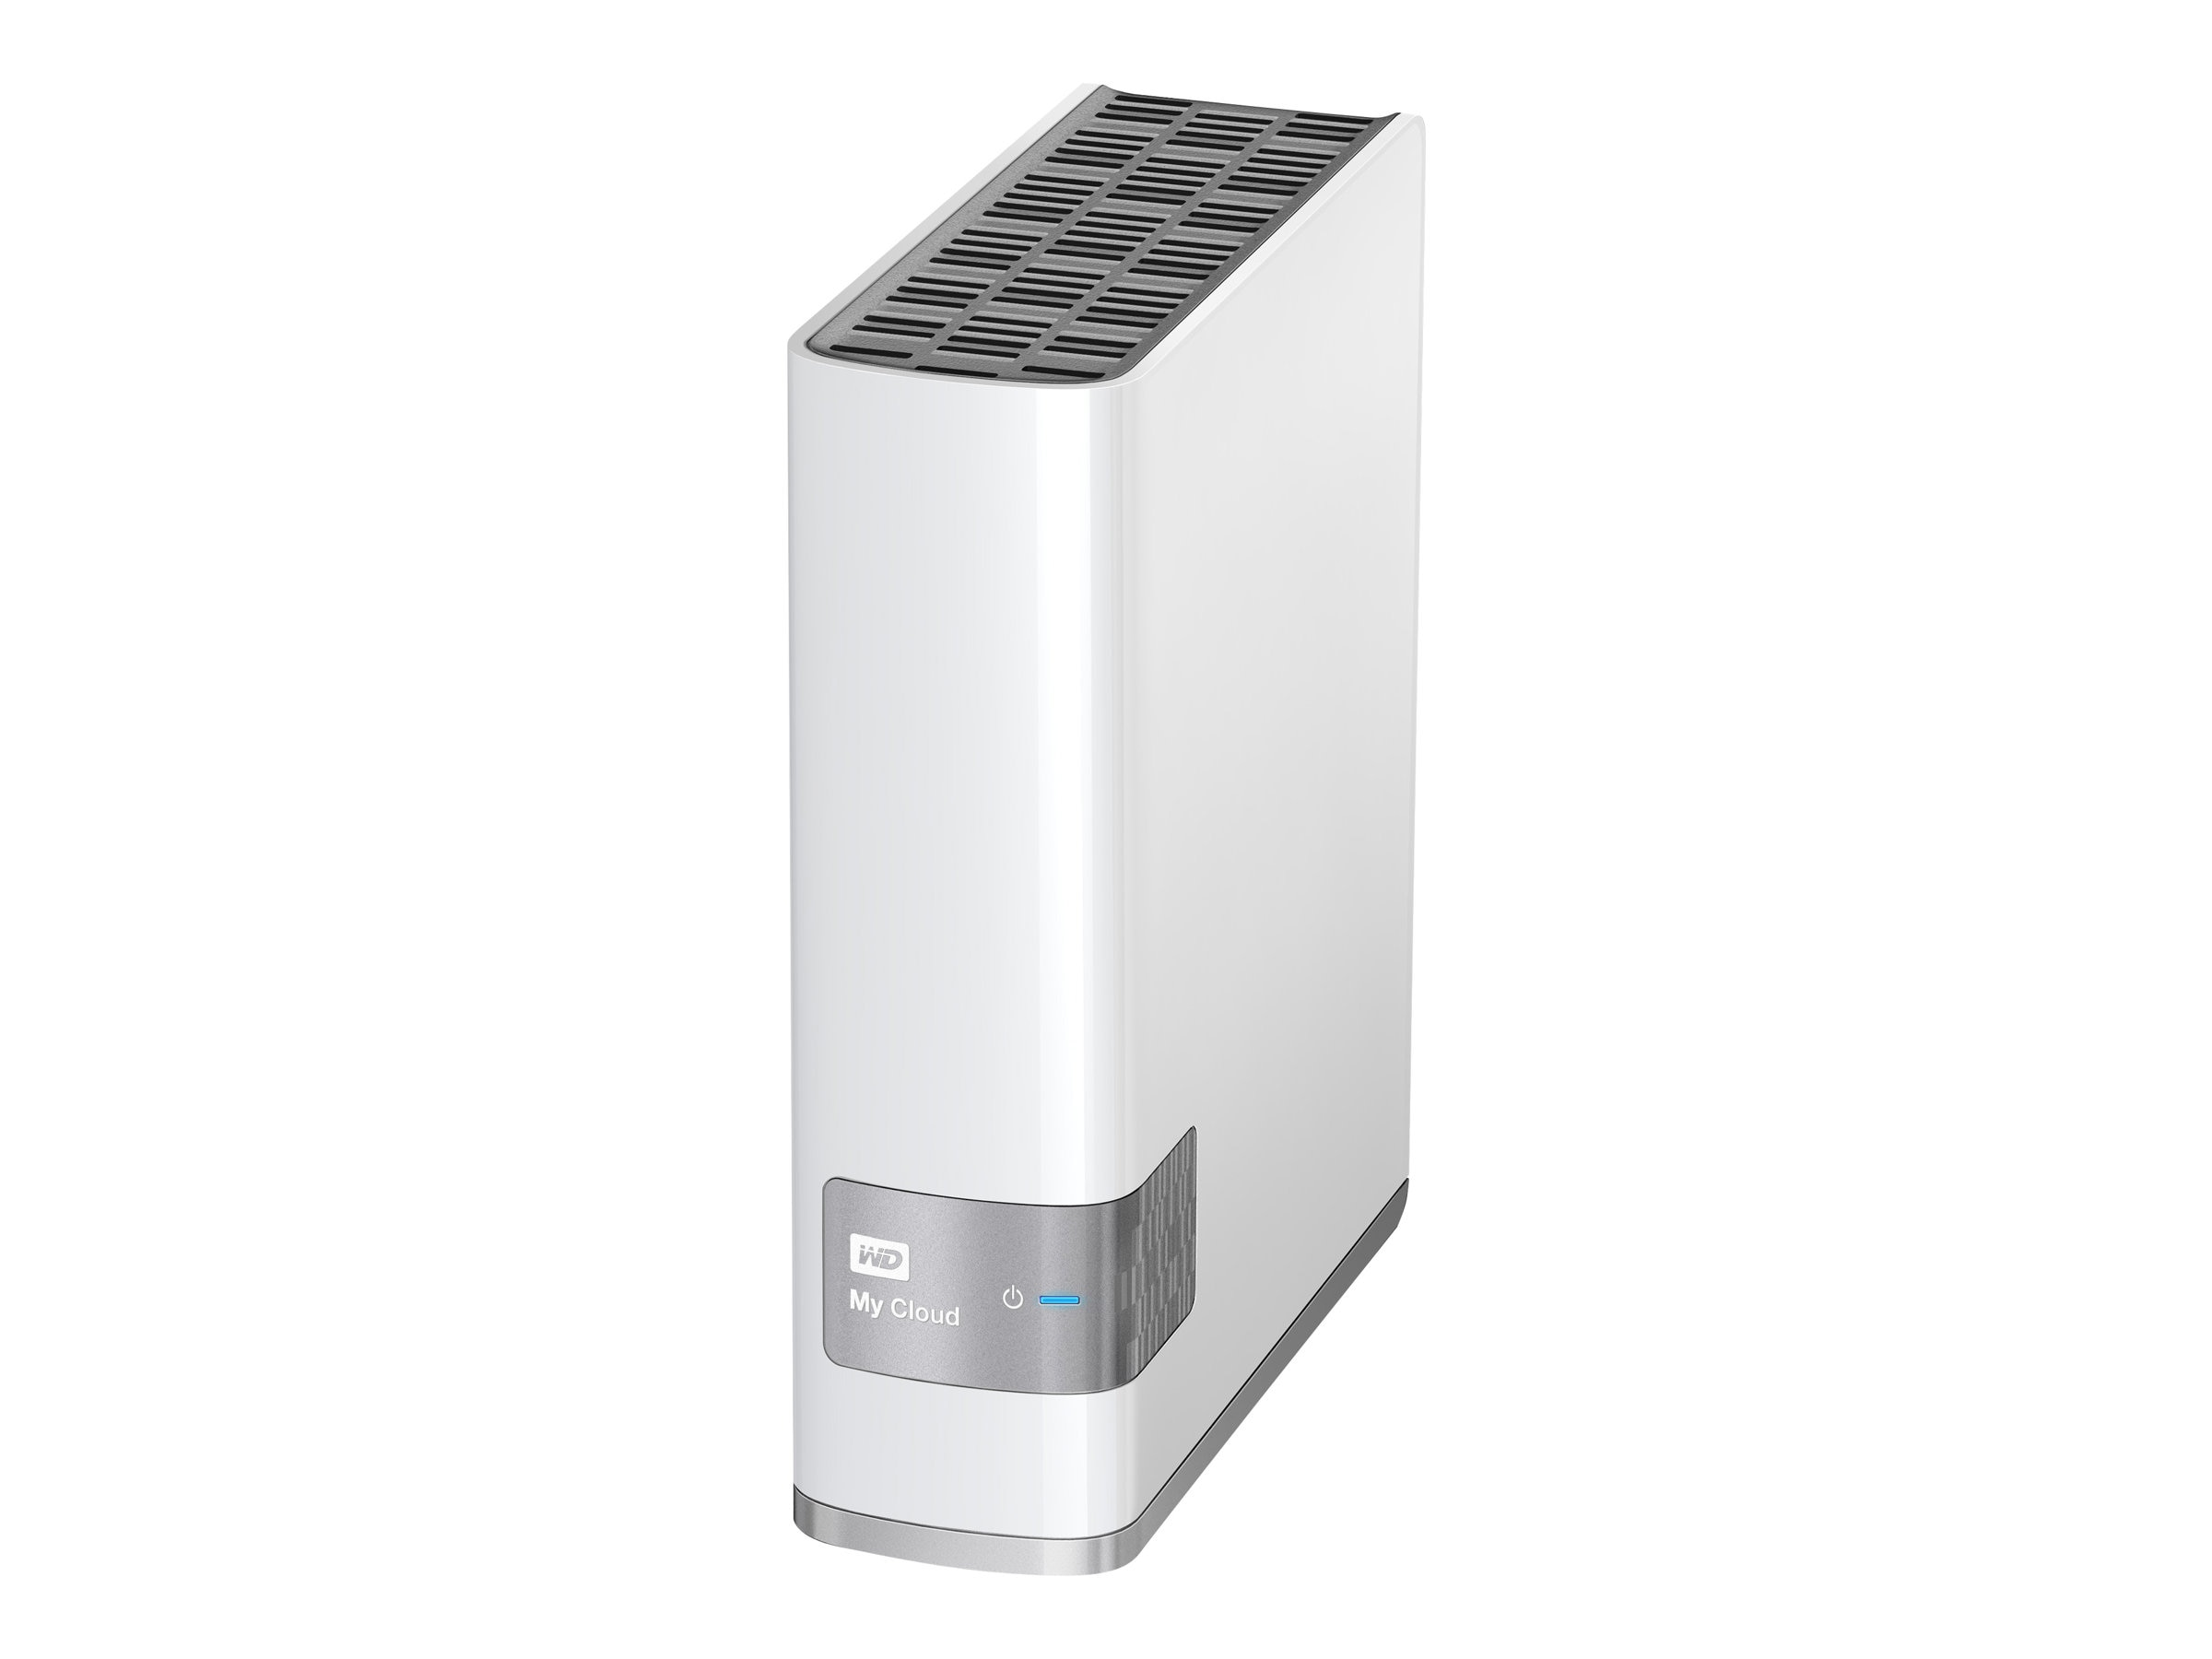 WD 6TB My Cloud Personal Cloud Storage